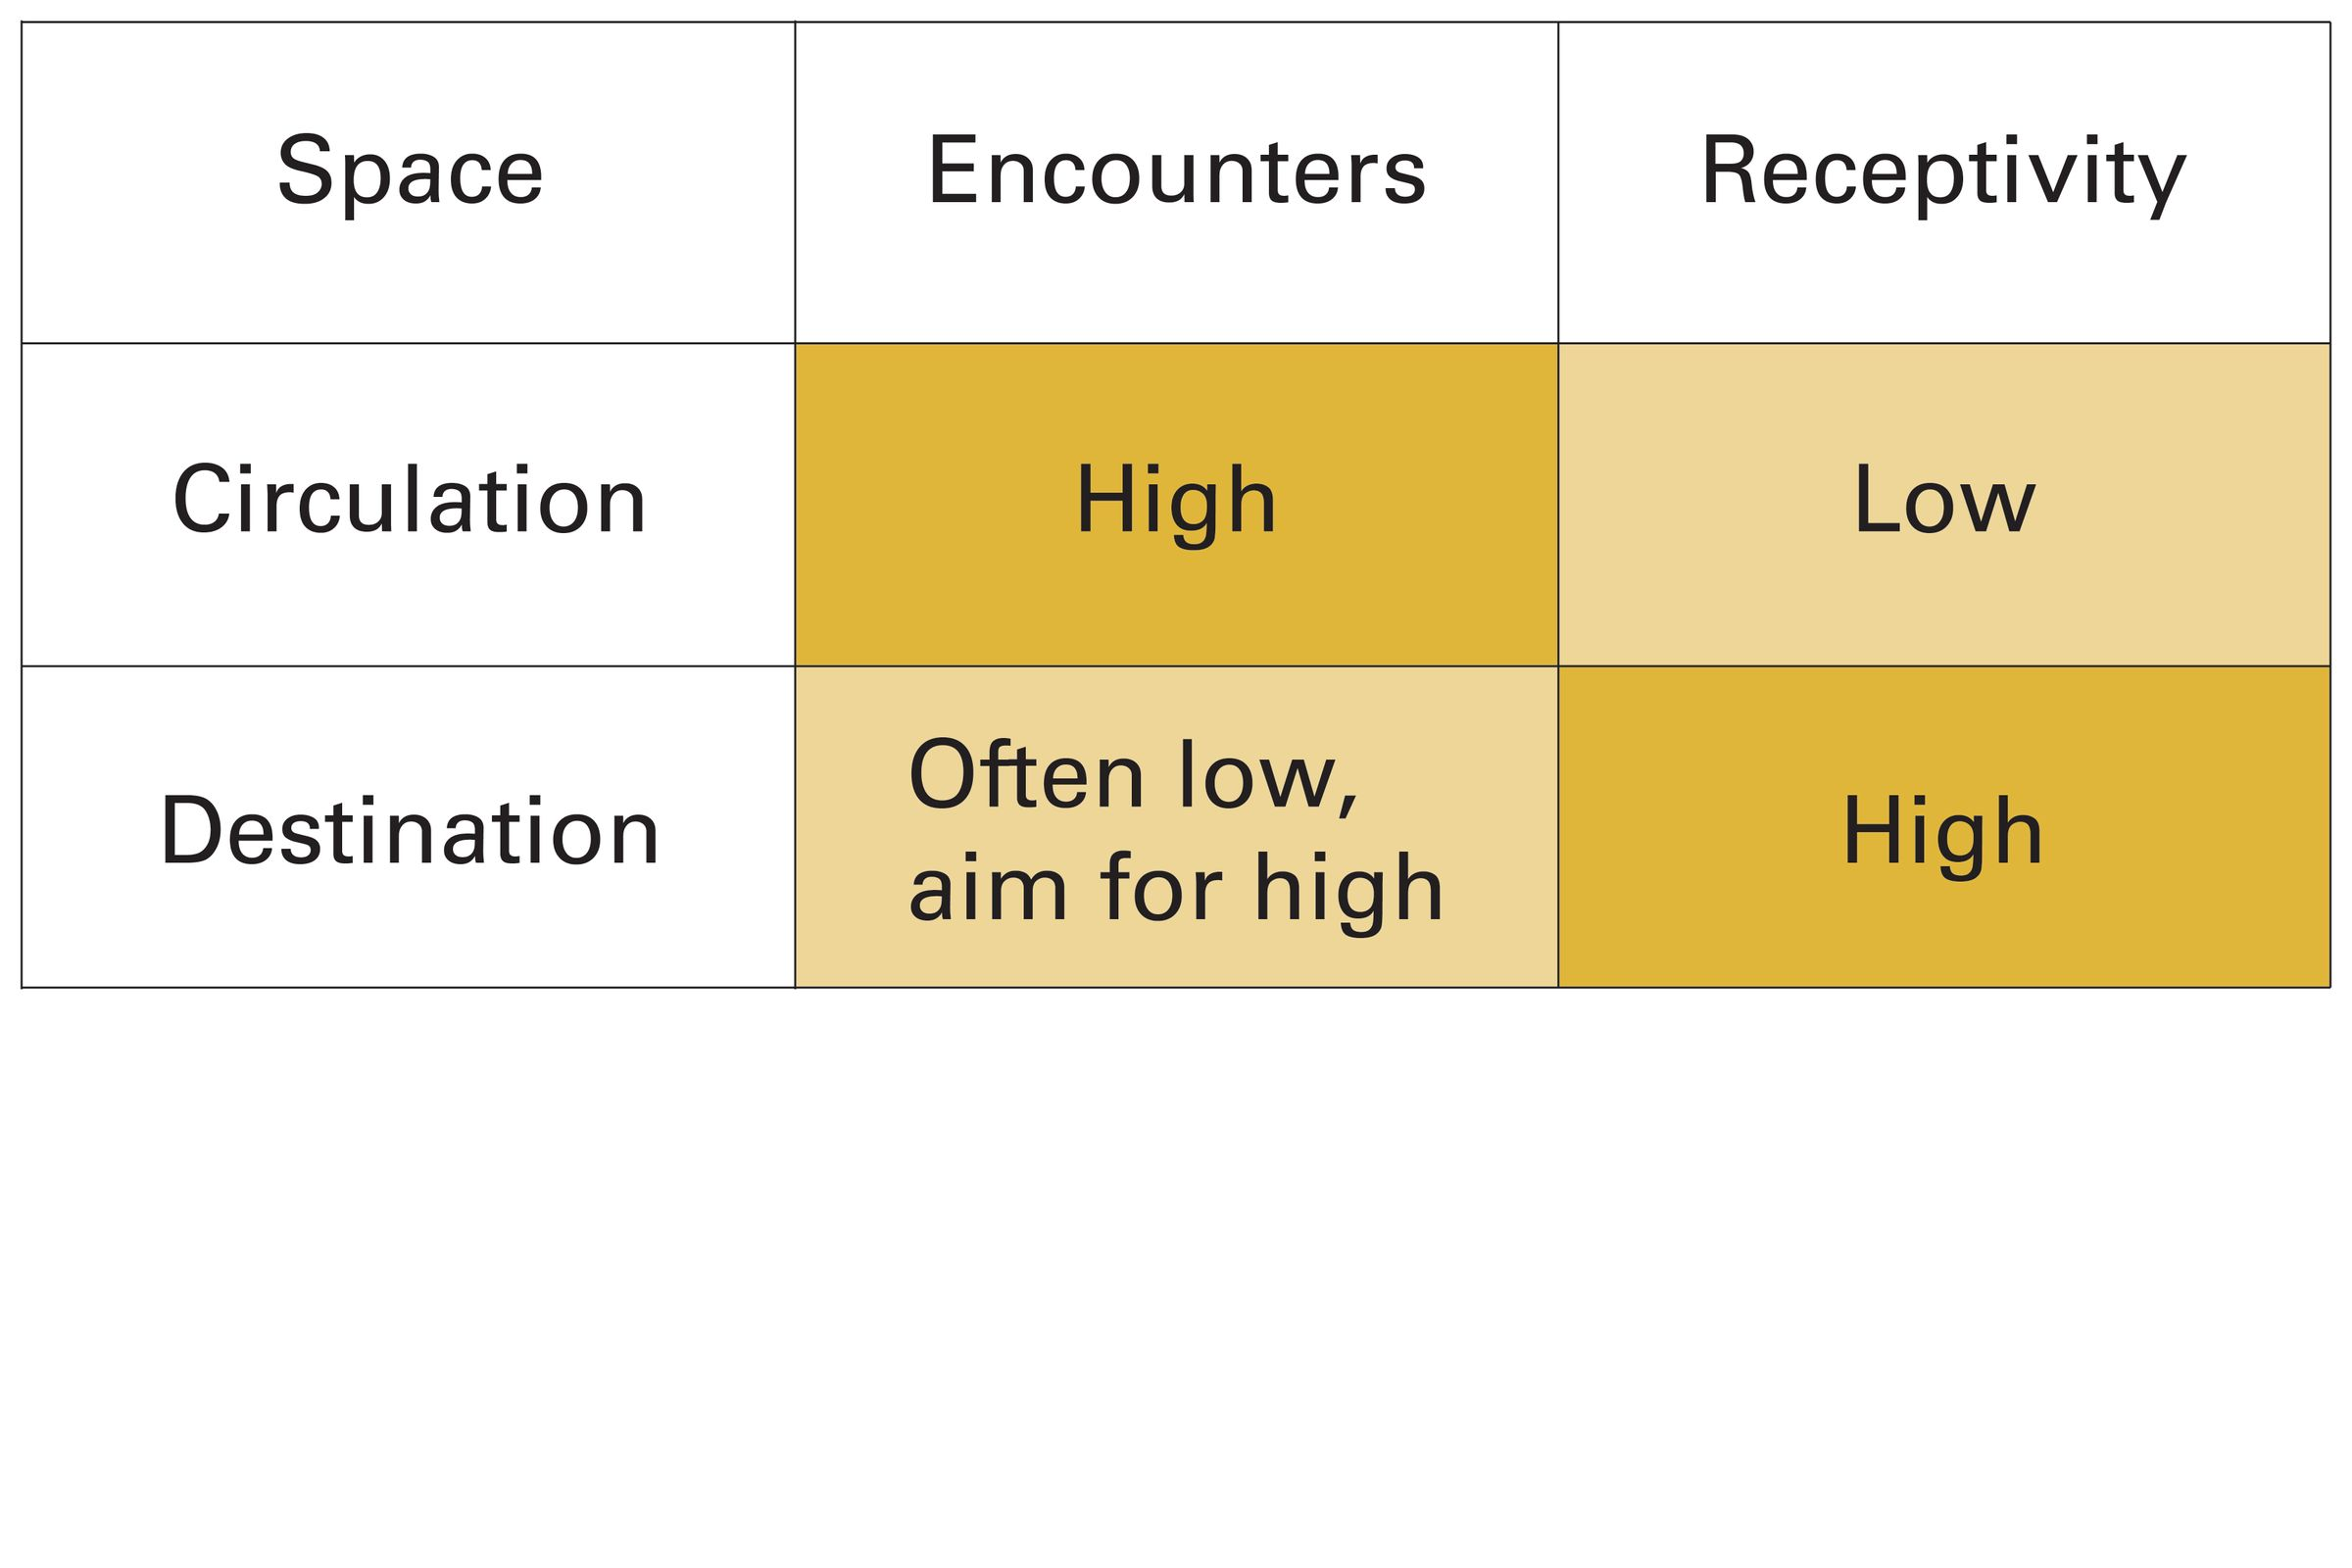 Table displaying the level of encounters and receptivity in circulation and destination spaces. Circulation spaces have a high level of encounters but low receptivity where as destination spaces have a low encounter chance and high receptivity.